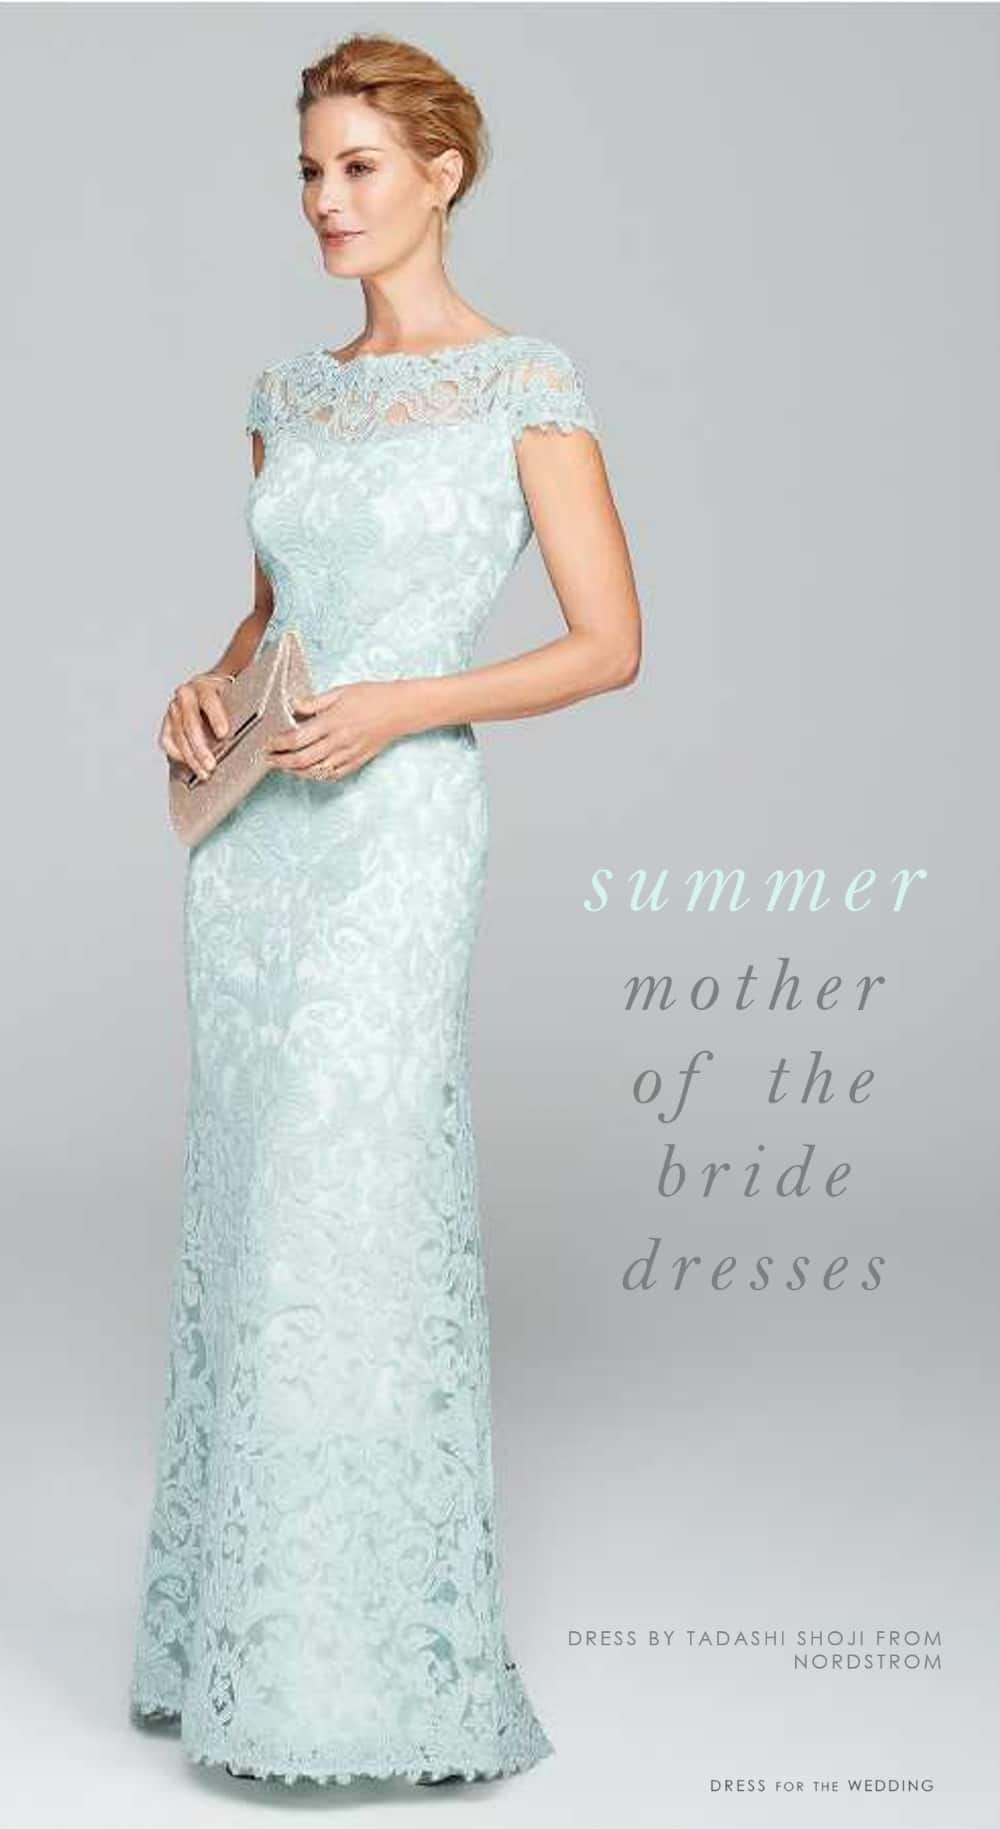 summer wedding mother of the bride dresses photo - 1